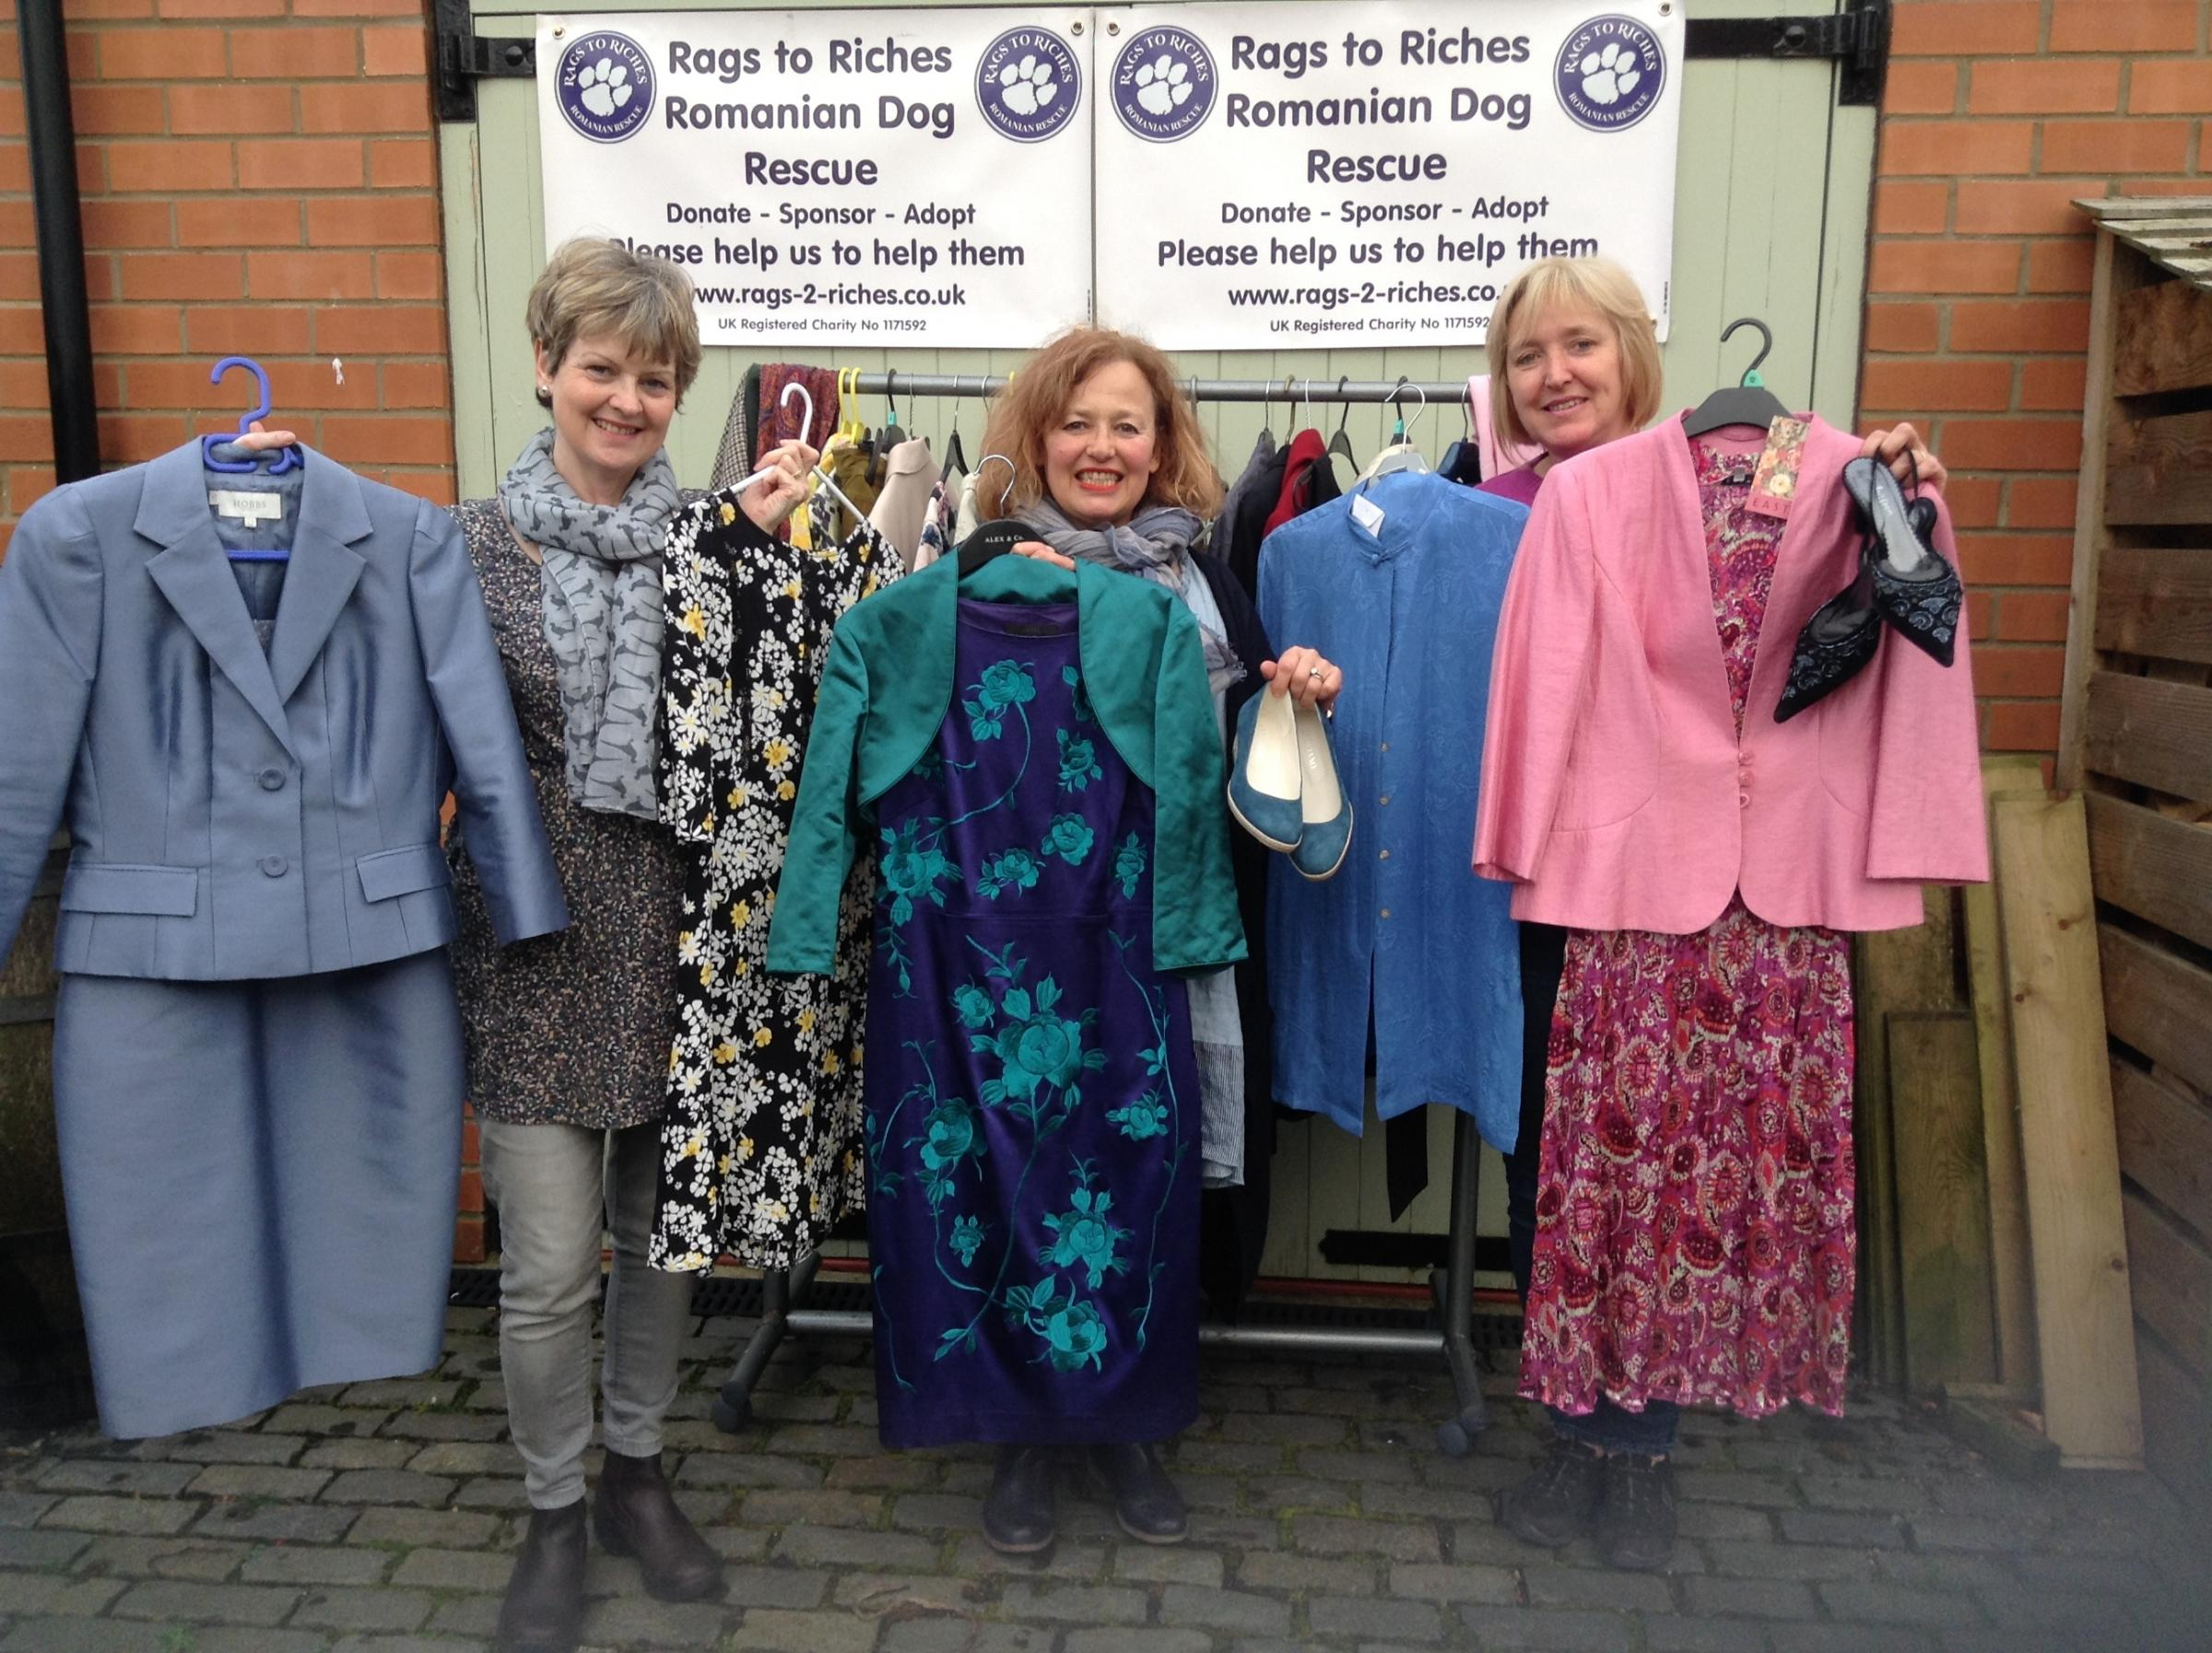 Getting ready for a preloved ladies clothing and accessories sale are fundraisers l-r Mandy Newlove, Dawn Panas and Helen Knapp.